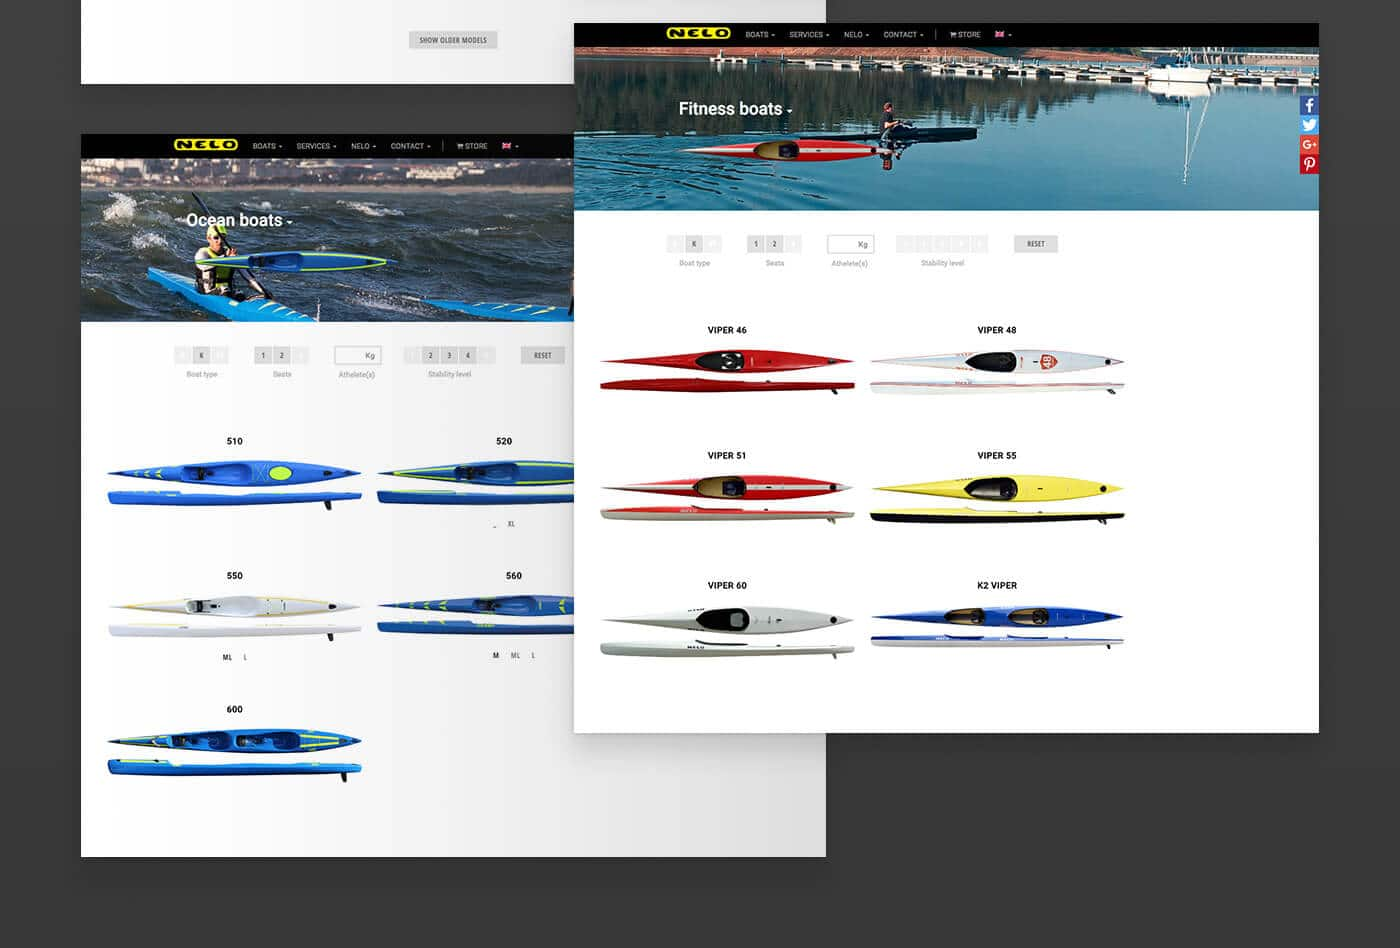 kayaks, boats, sports, branding, industry, manufacture, factory, stationary, web design, video, marketing